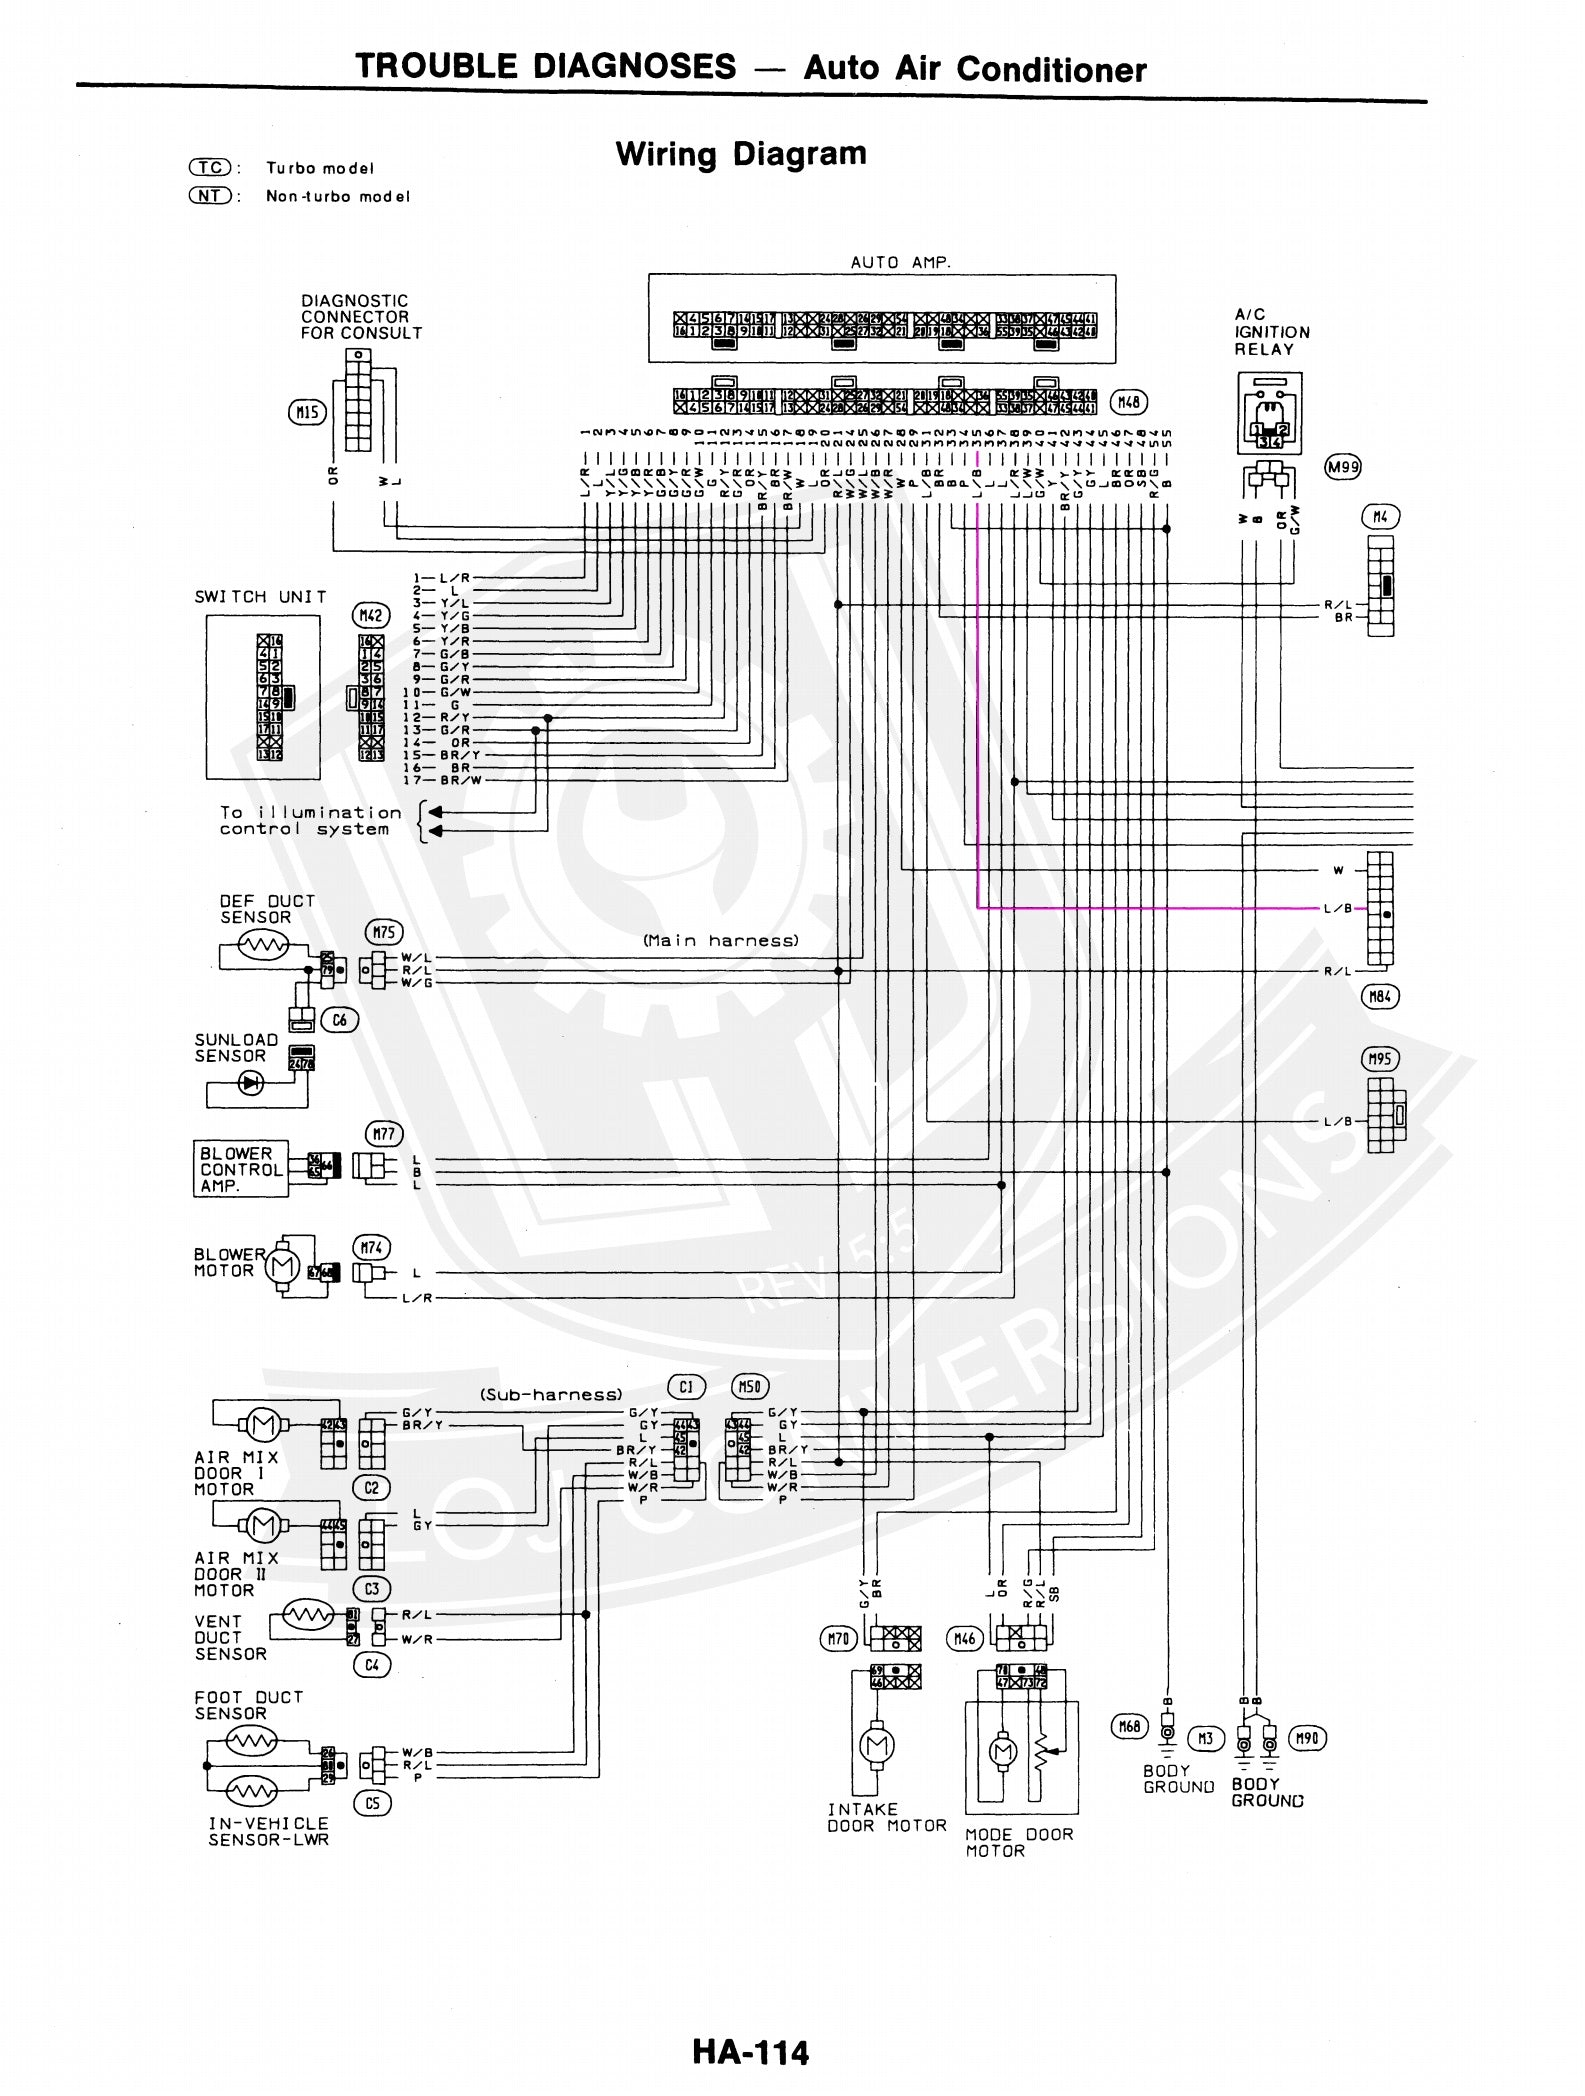 Nissan 300zx Wiring Diagram - Wiring Diagrams DatabaseDiamond Car Service